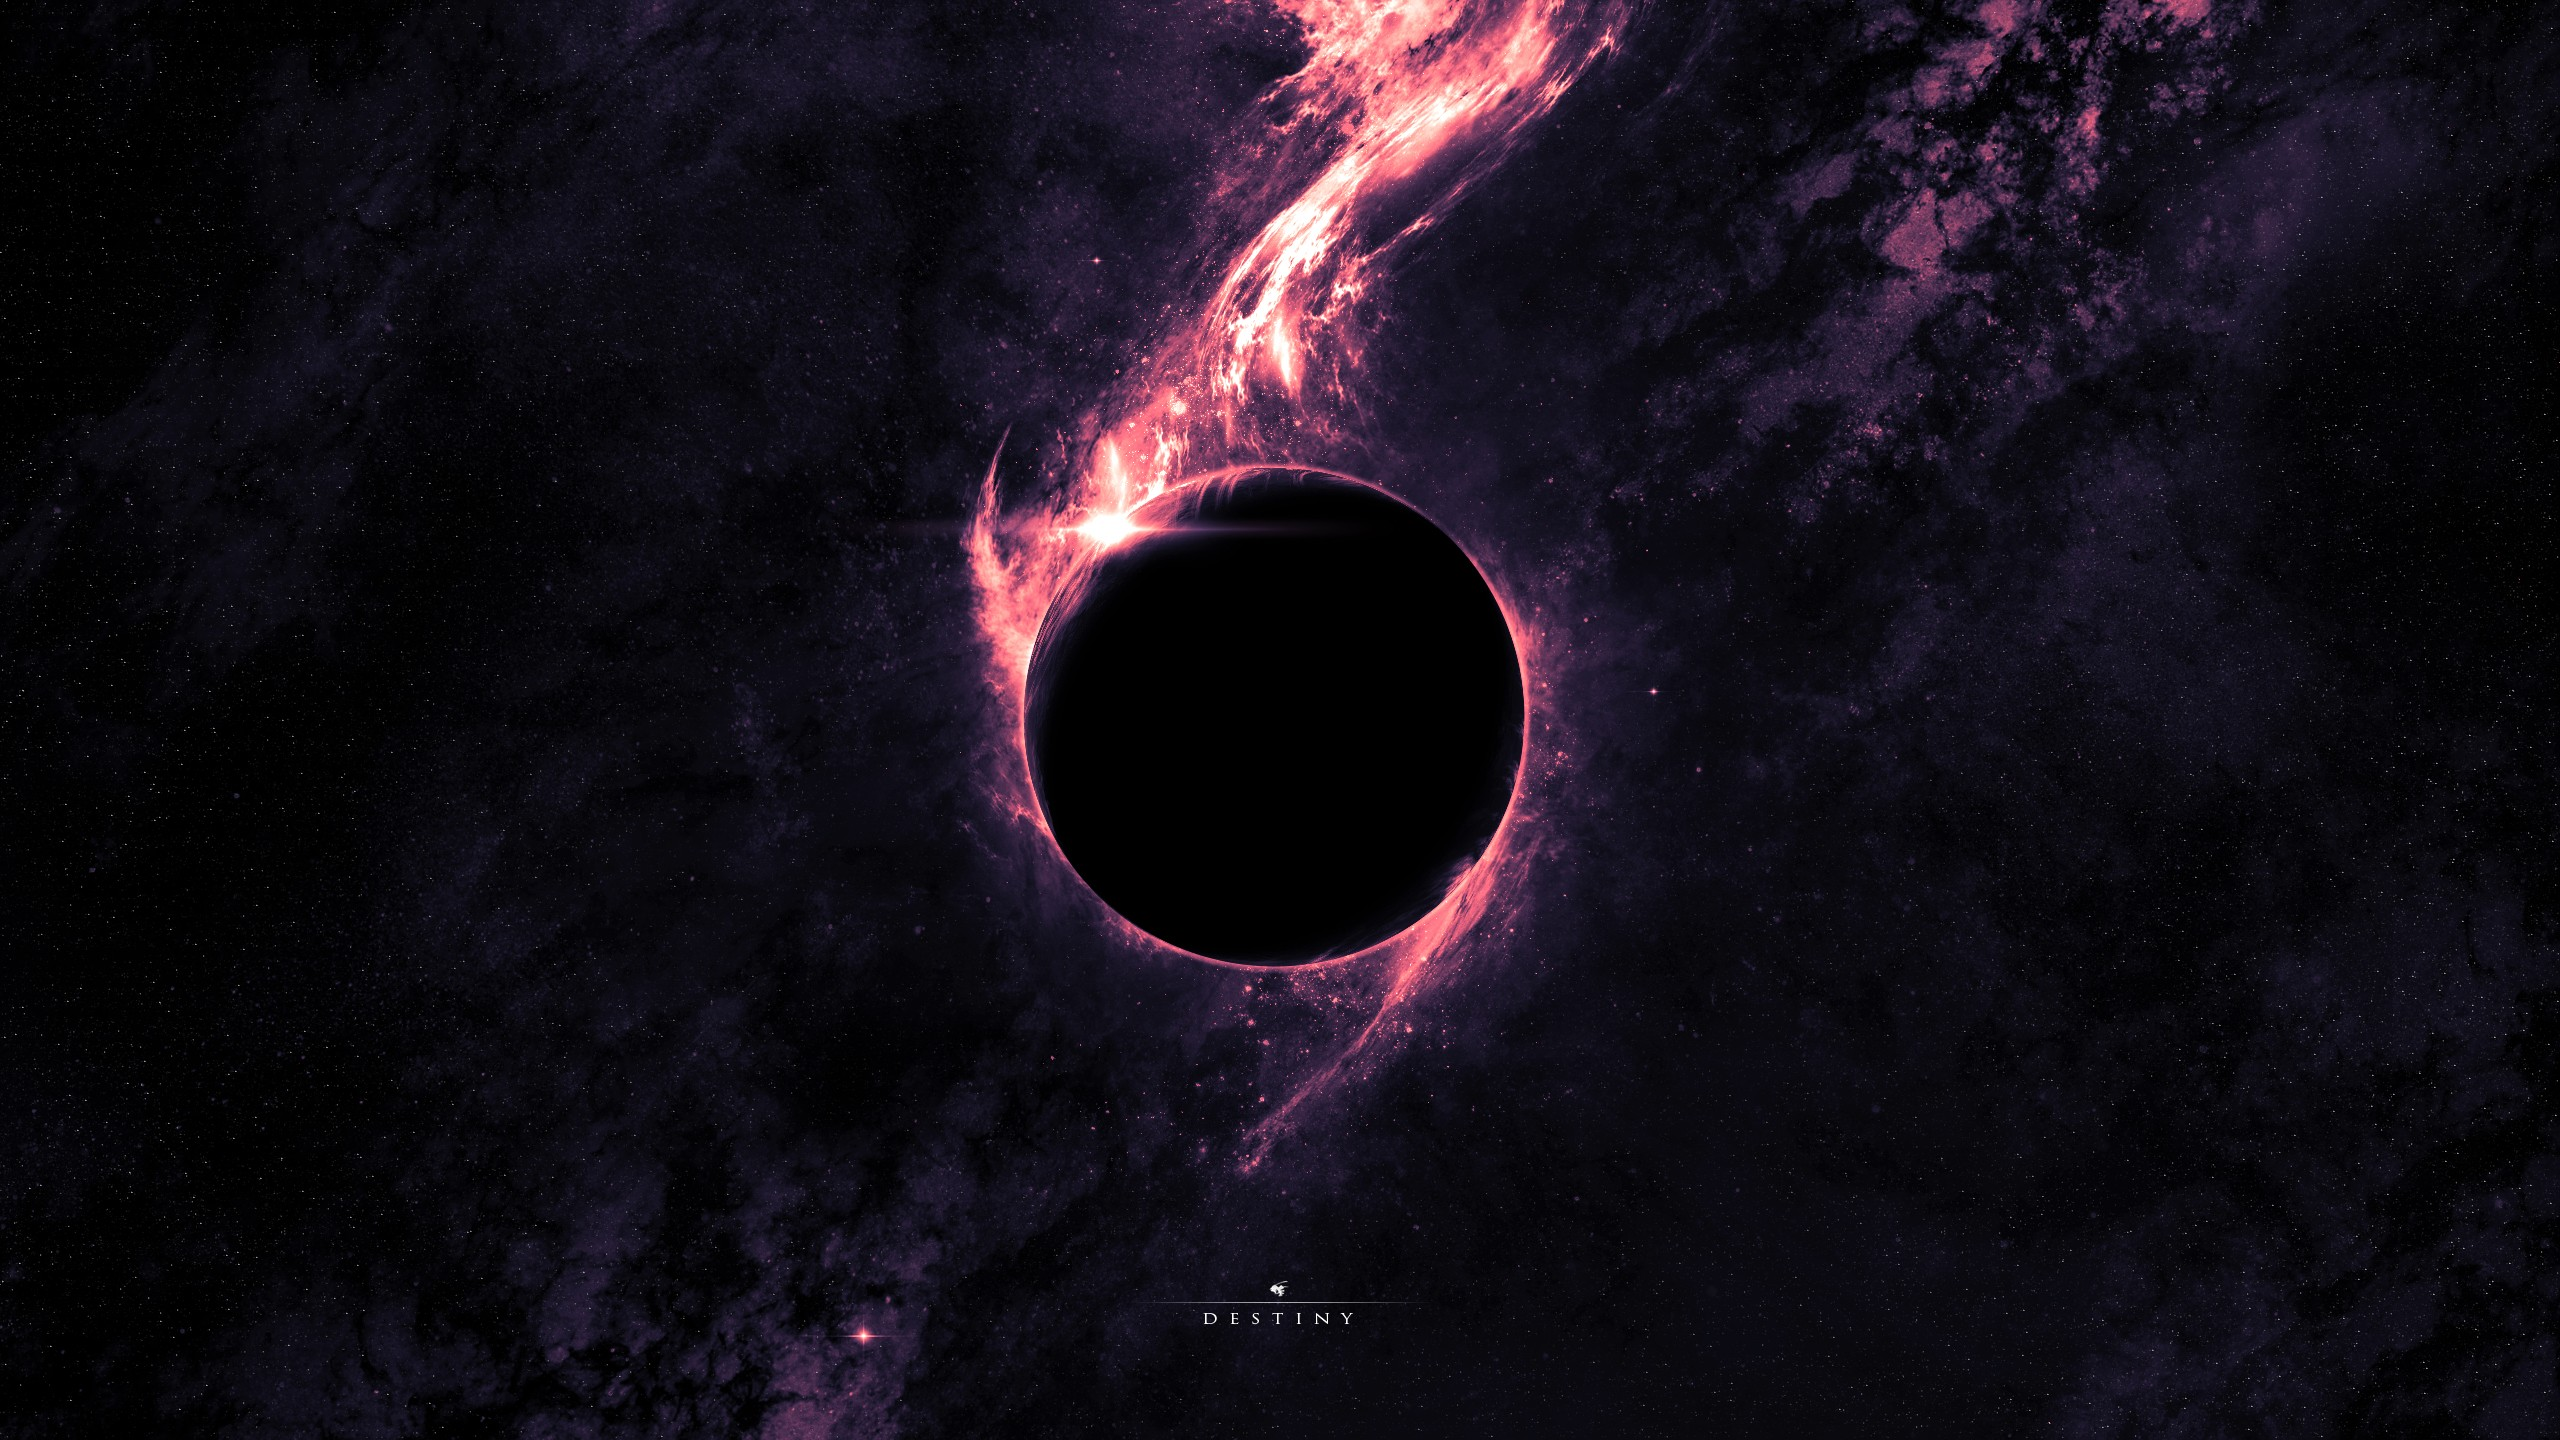 Outer space planets black hole wallpaper | 2560x1440 ...